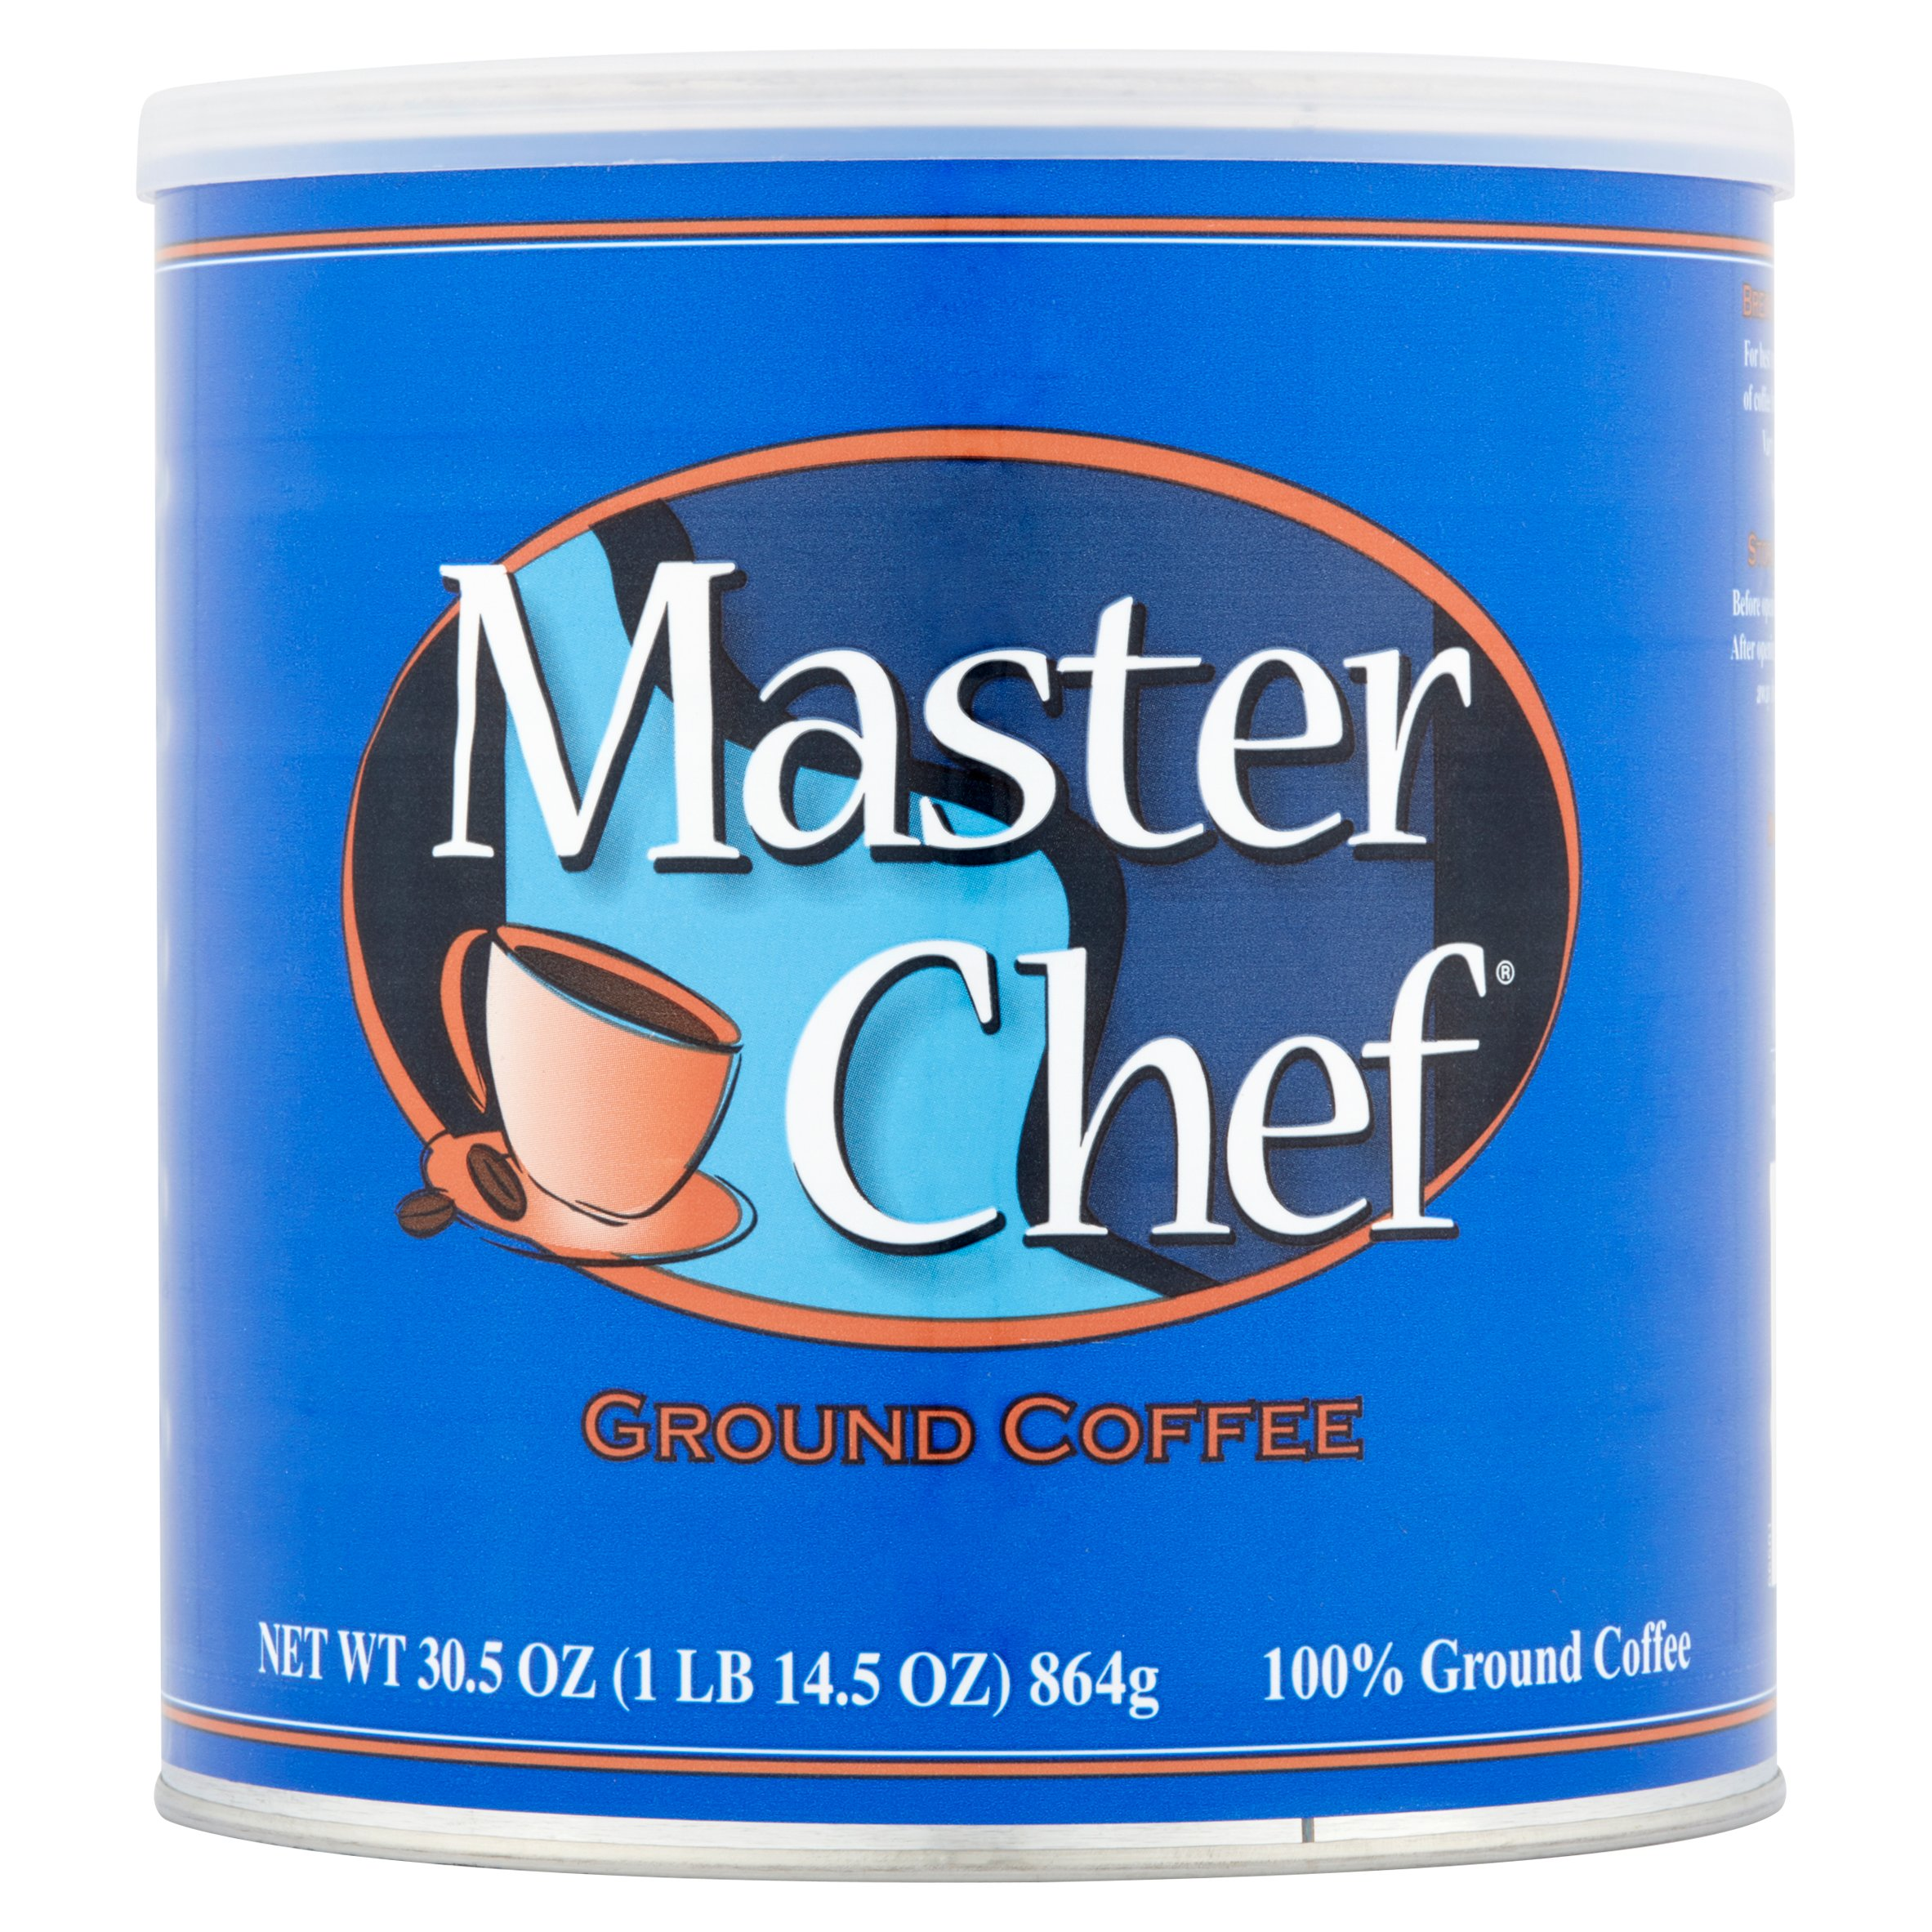 Master Chef Ground Coffee 30.5 oz. Can